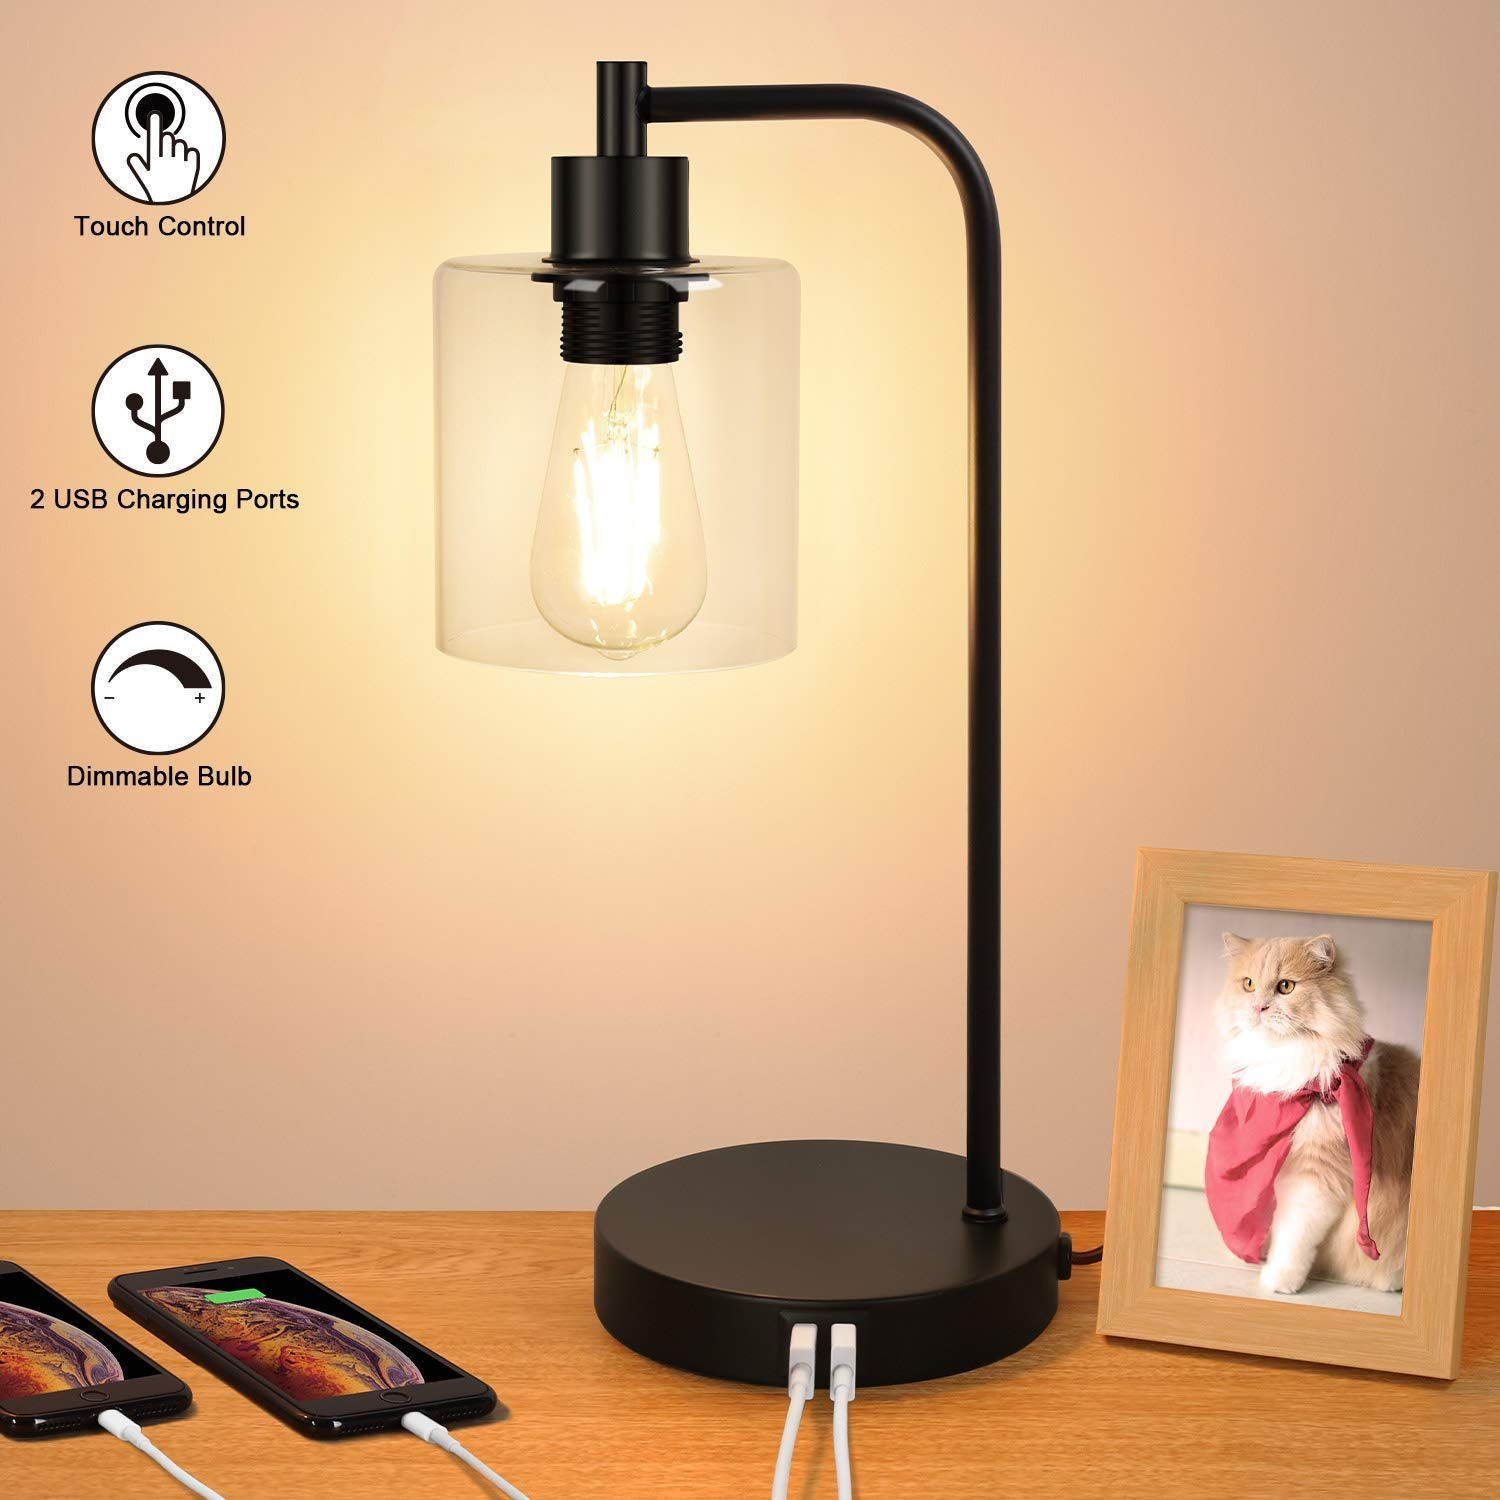 Industrial Touch Control Table Lamp Dual Usb Charging Ports 3 Way Dimmable Vin Charging Control Dimmable Dual Industrial Lamp Por In 2020 Bedside Lamps Design